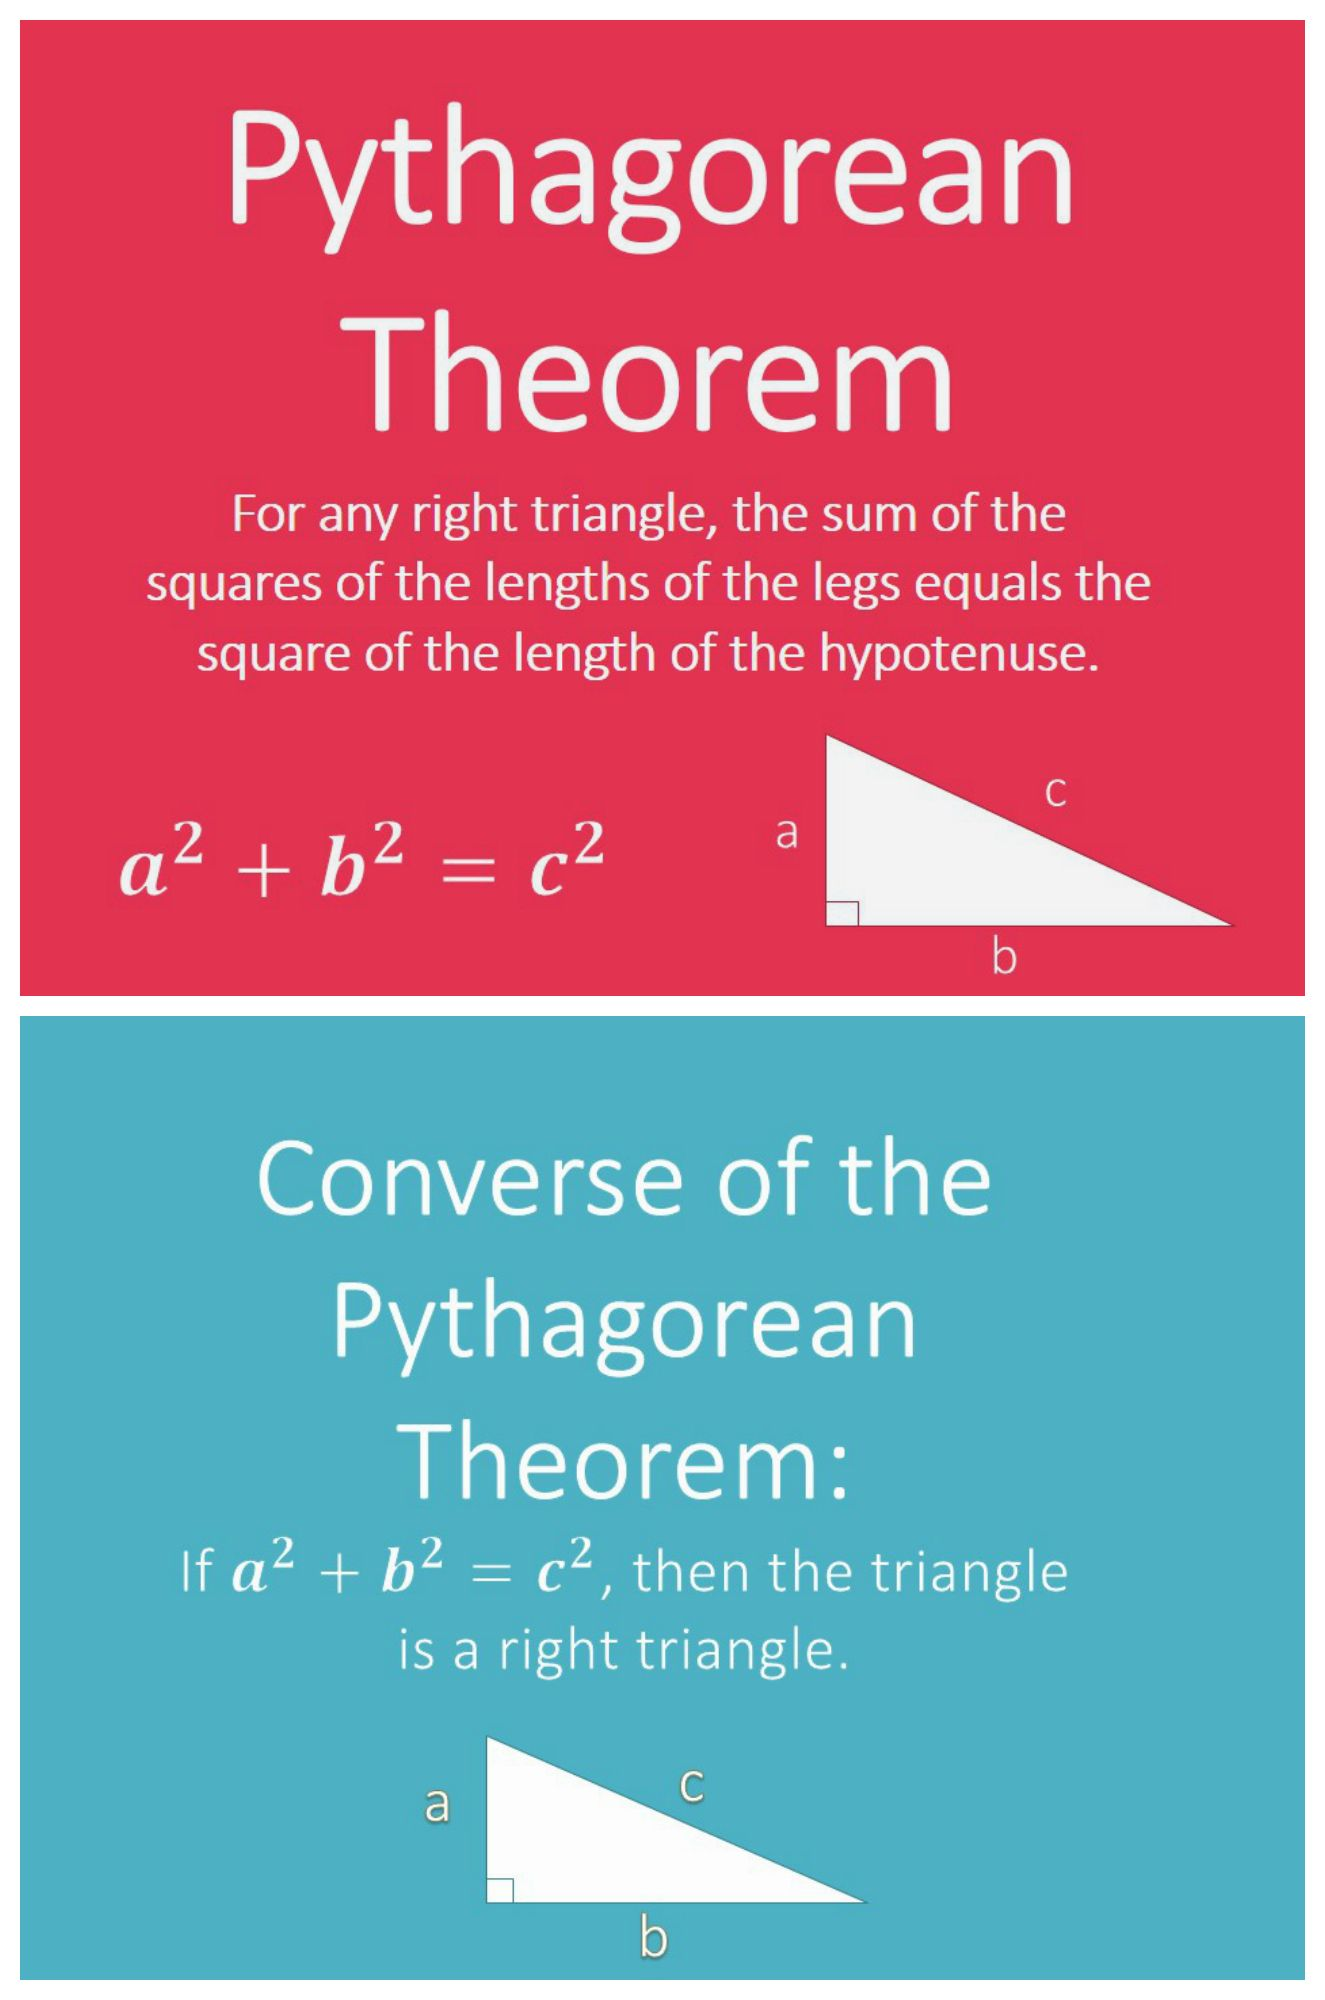 pythagorean theorem converse mini posters 8.g. 6 7 geometry word